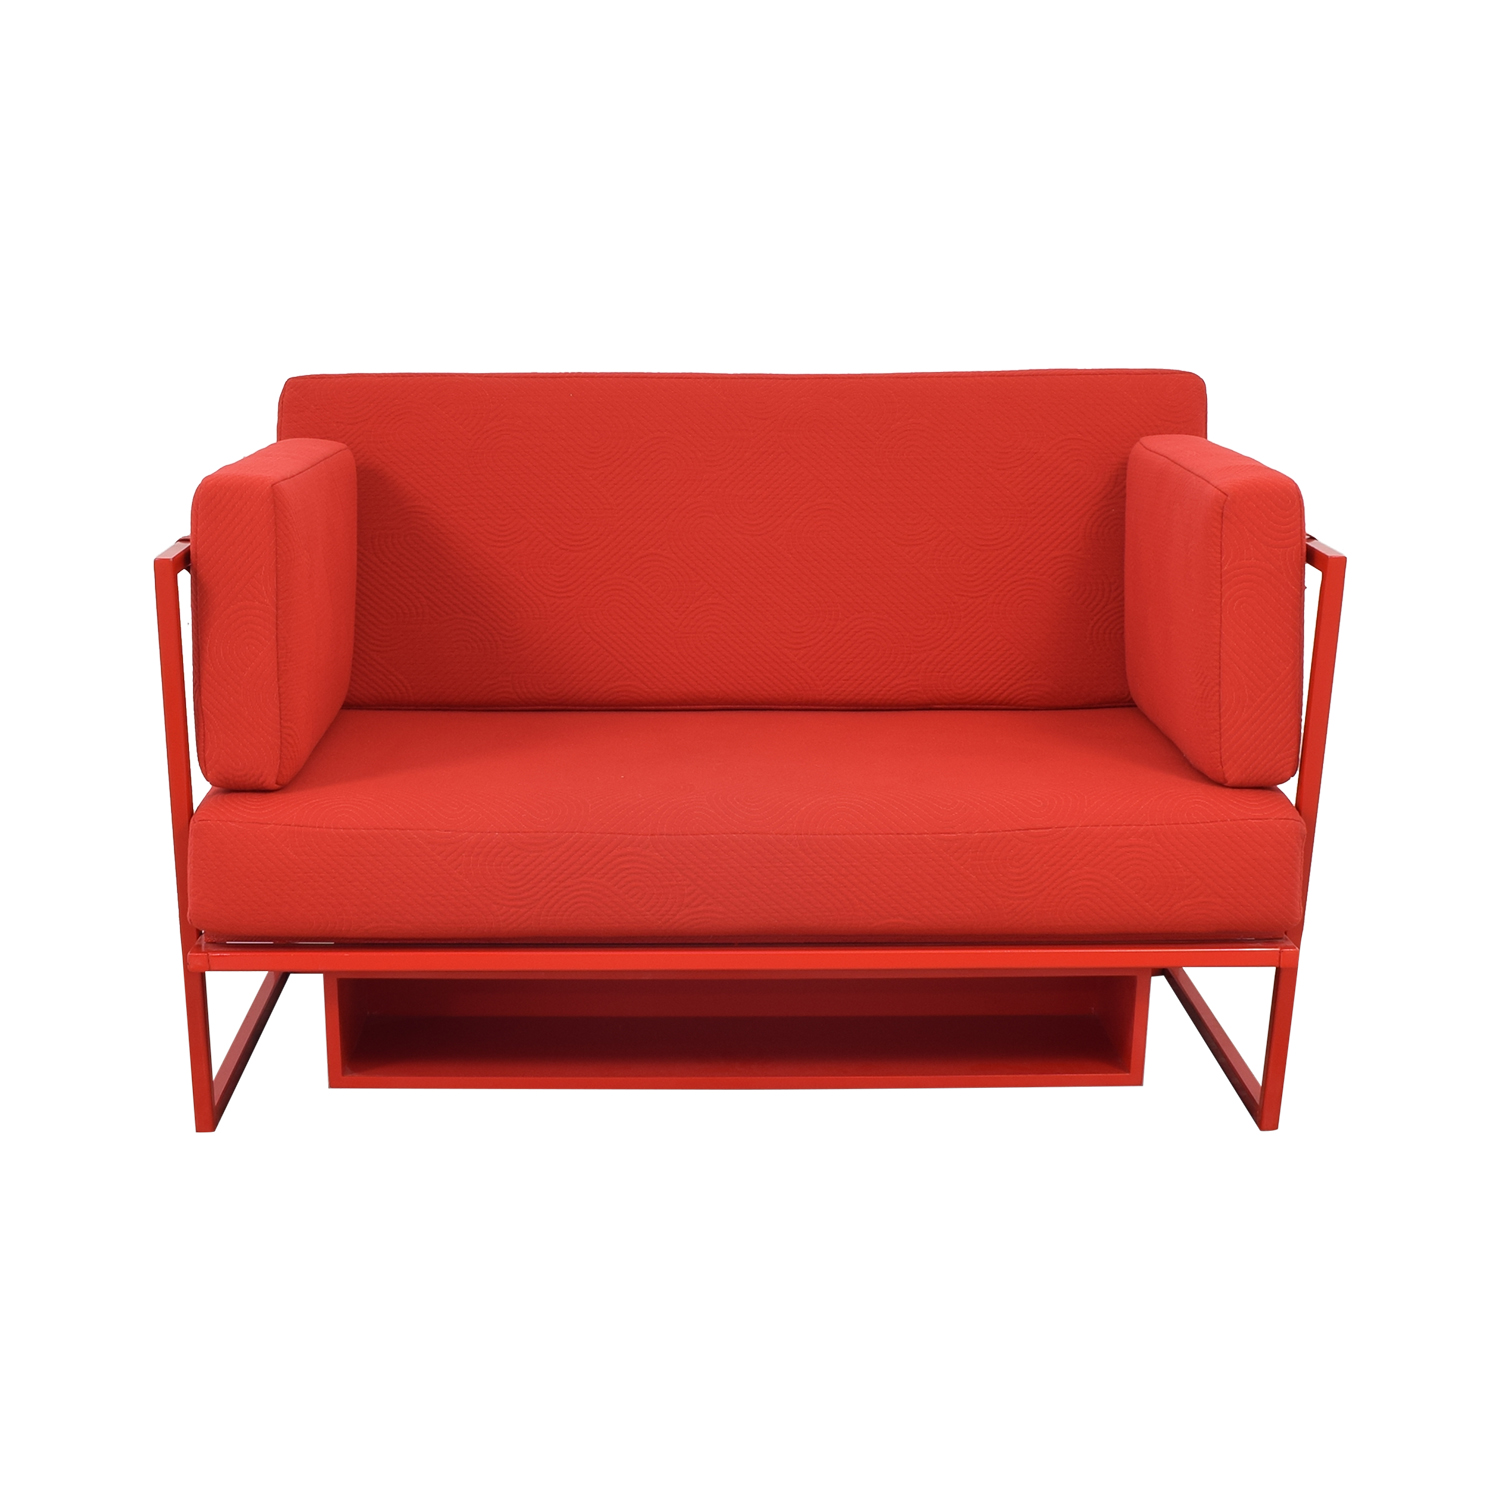 Collector NYC Collector NYC Custom Red Sofa for sale